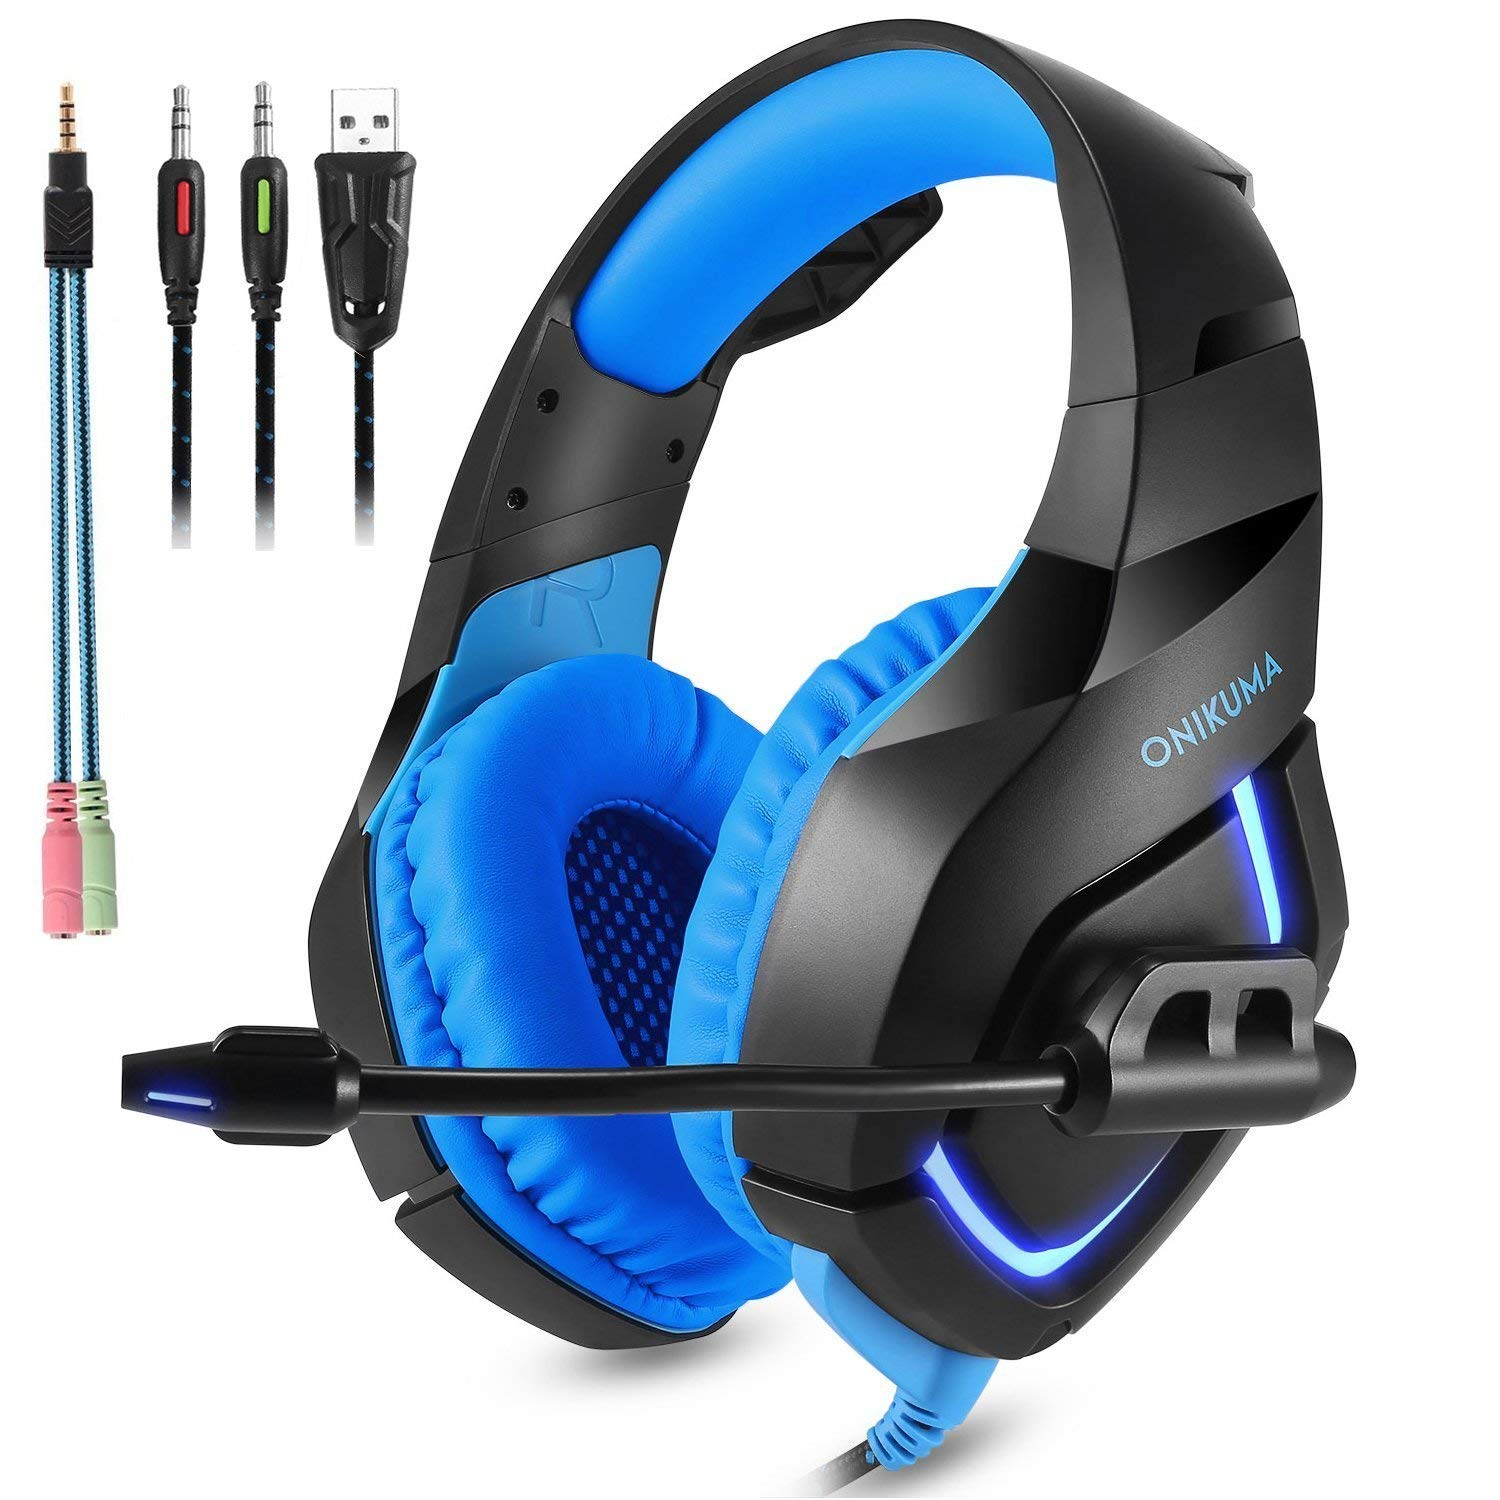 ONIKUMA Stereo Gaming Headset for PS4 Xbox One, Noise Cancelling Mic on xbox 360 hook up diagram, xbox 360 controller pinout, xbox 360 connections diagram, xbox one wired headset, xbox 360 headset parts, xbox 360 controller diagram, xbox controller wiring diagram, xbox 360 headset datasheet, xbox 360 controller schematic, power supply wiring diagram, xbox 360 headset plug, xbox one diagram, xbox one headset pinout, cobra microphone wiring diagram, 4 pair microphone wiring diagram, power cord wiring diagram, ipod wiring diagram, ps3 wiring diagram, laptop wiring diagram, xbox 360 slim diagram,